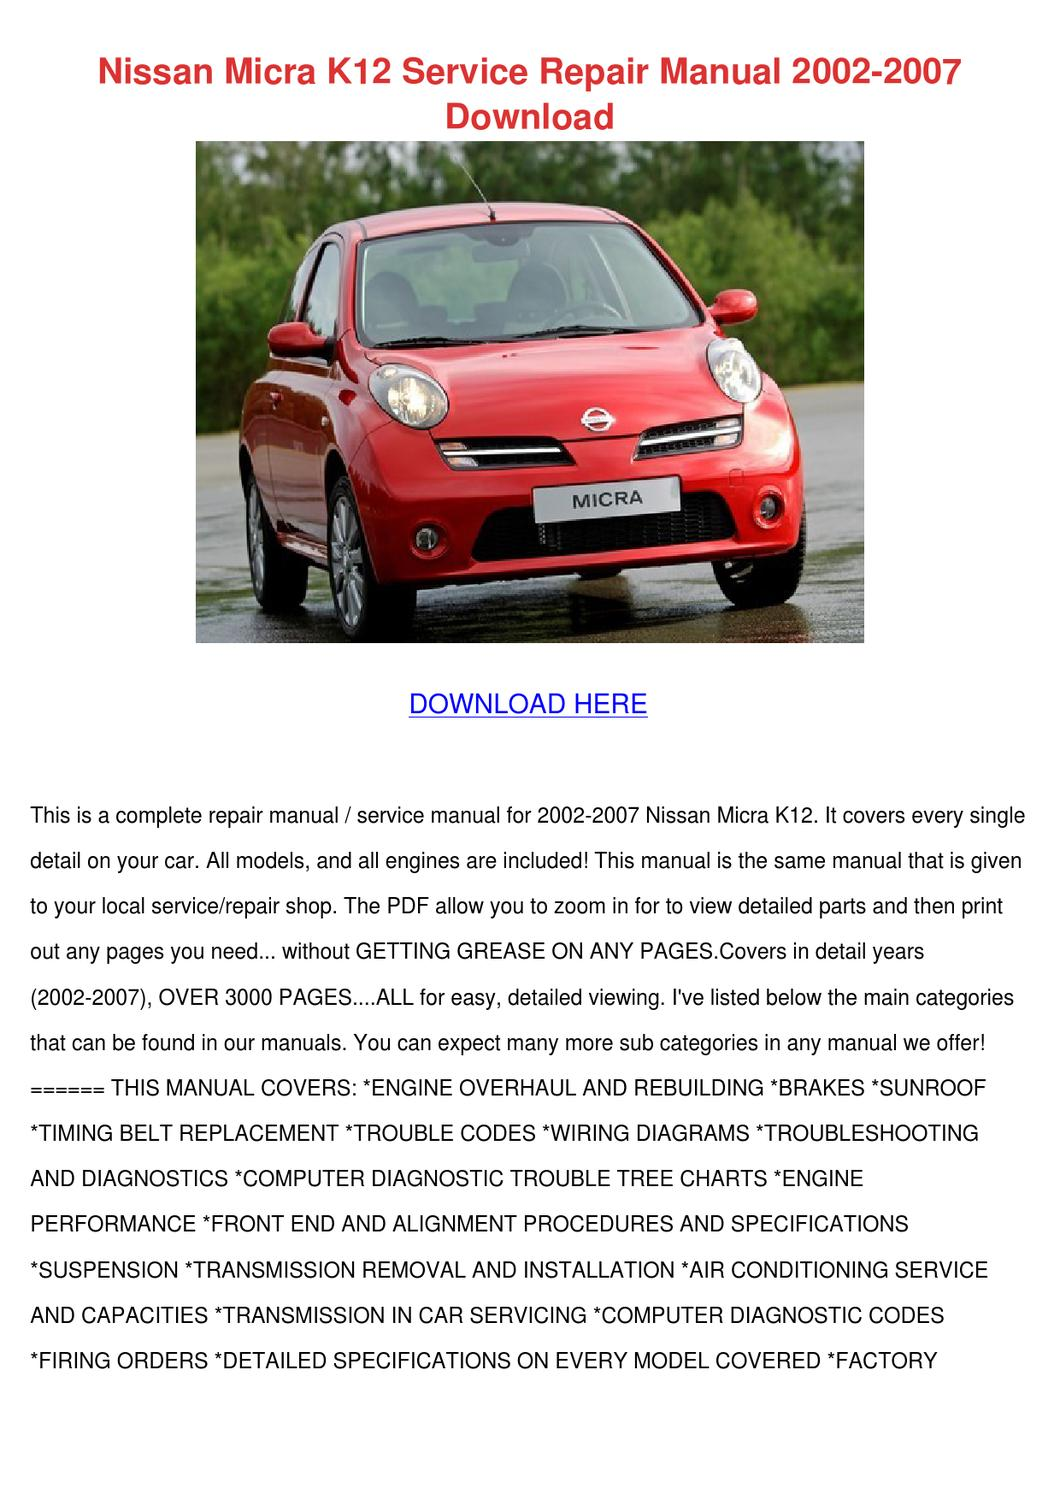 Nissan Micra K12 Service Repair Manual 2002 2 By Therese